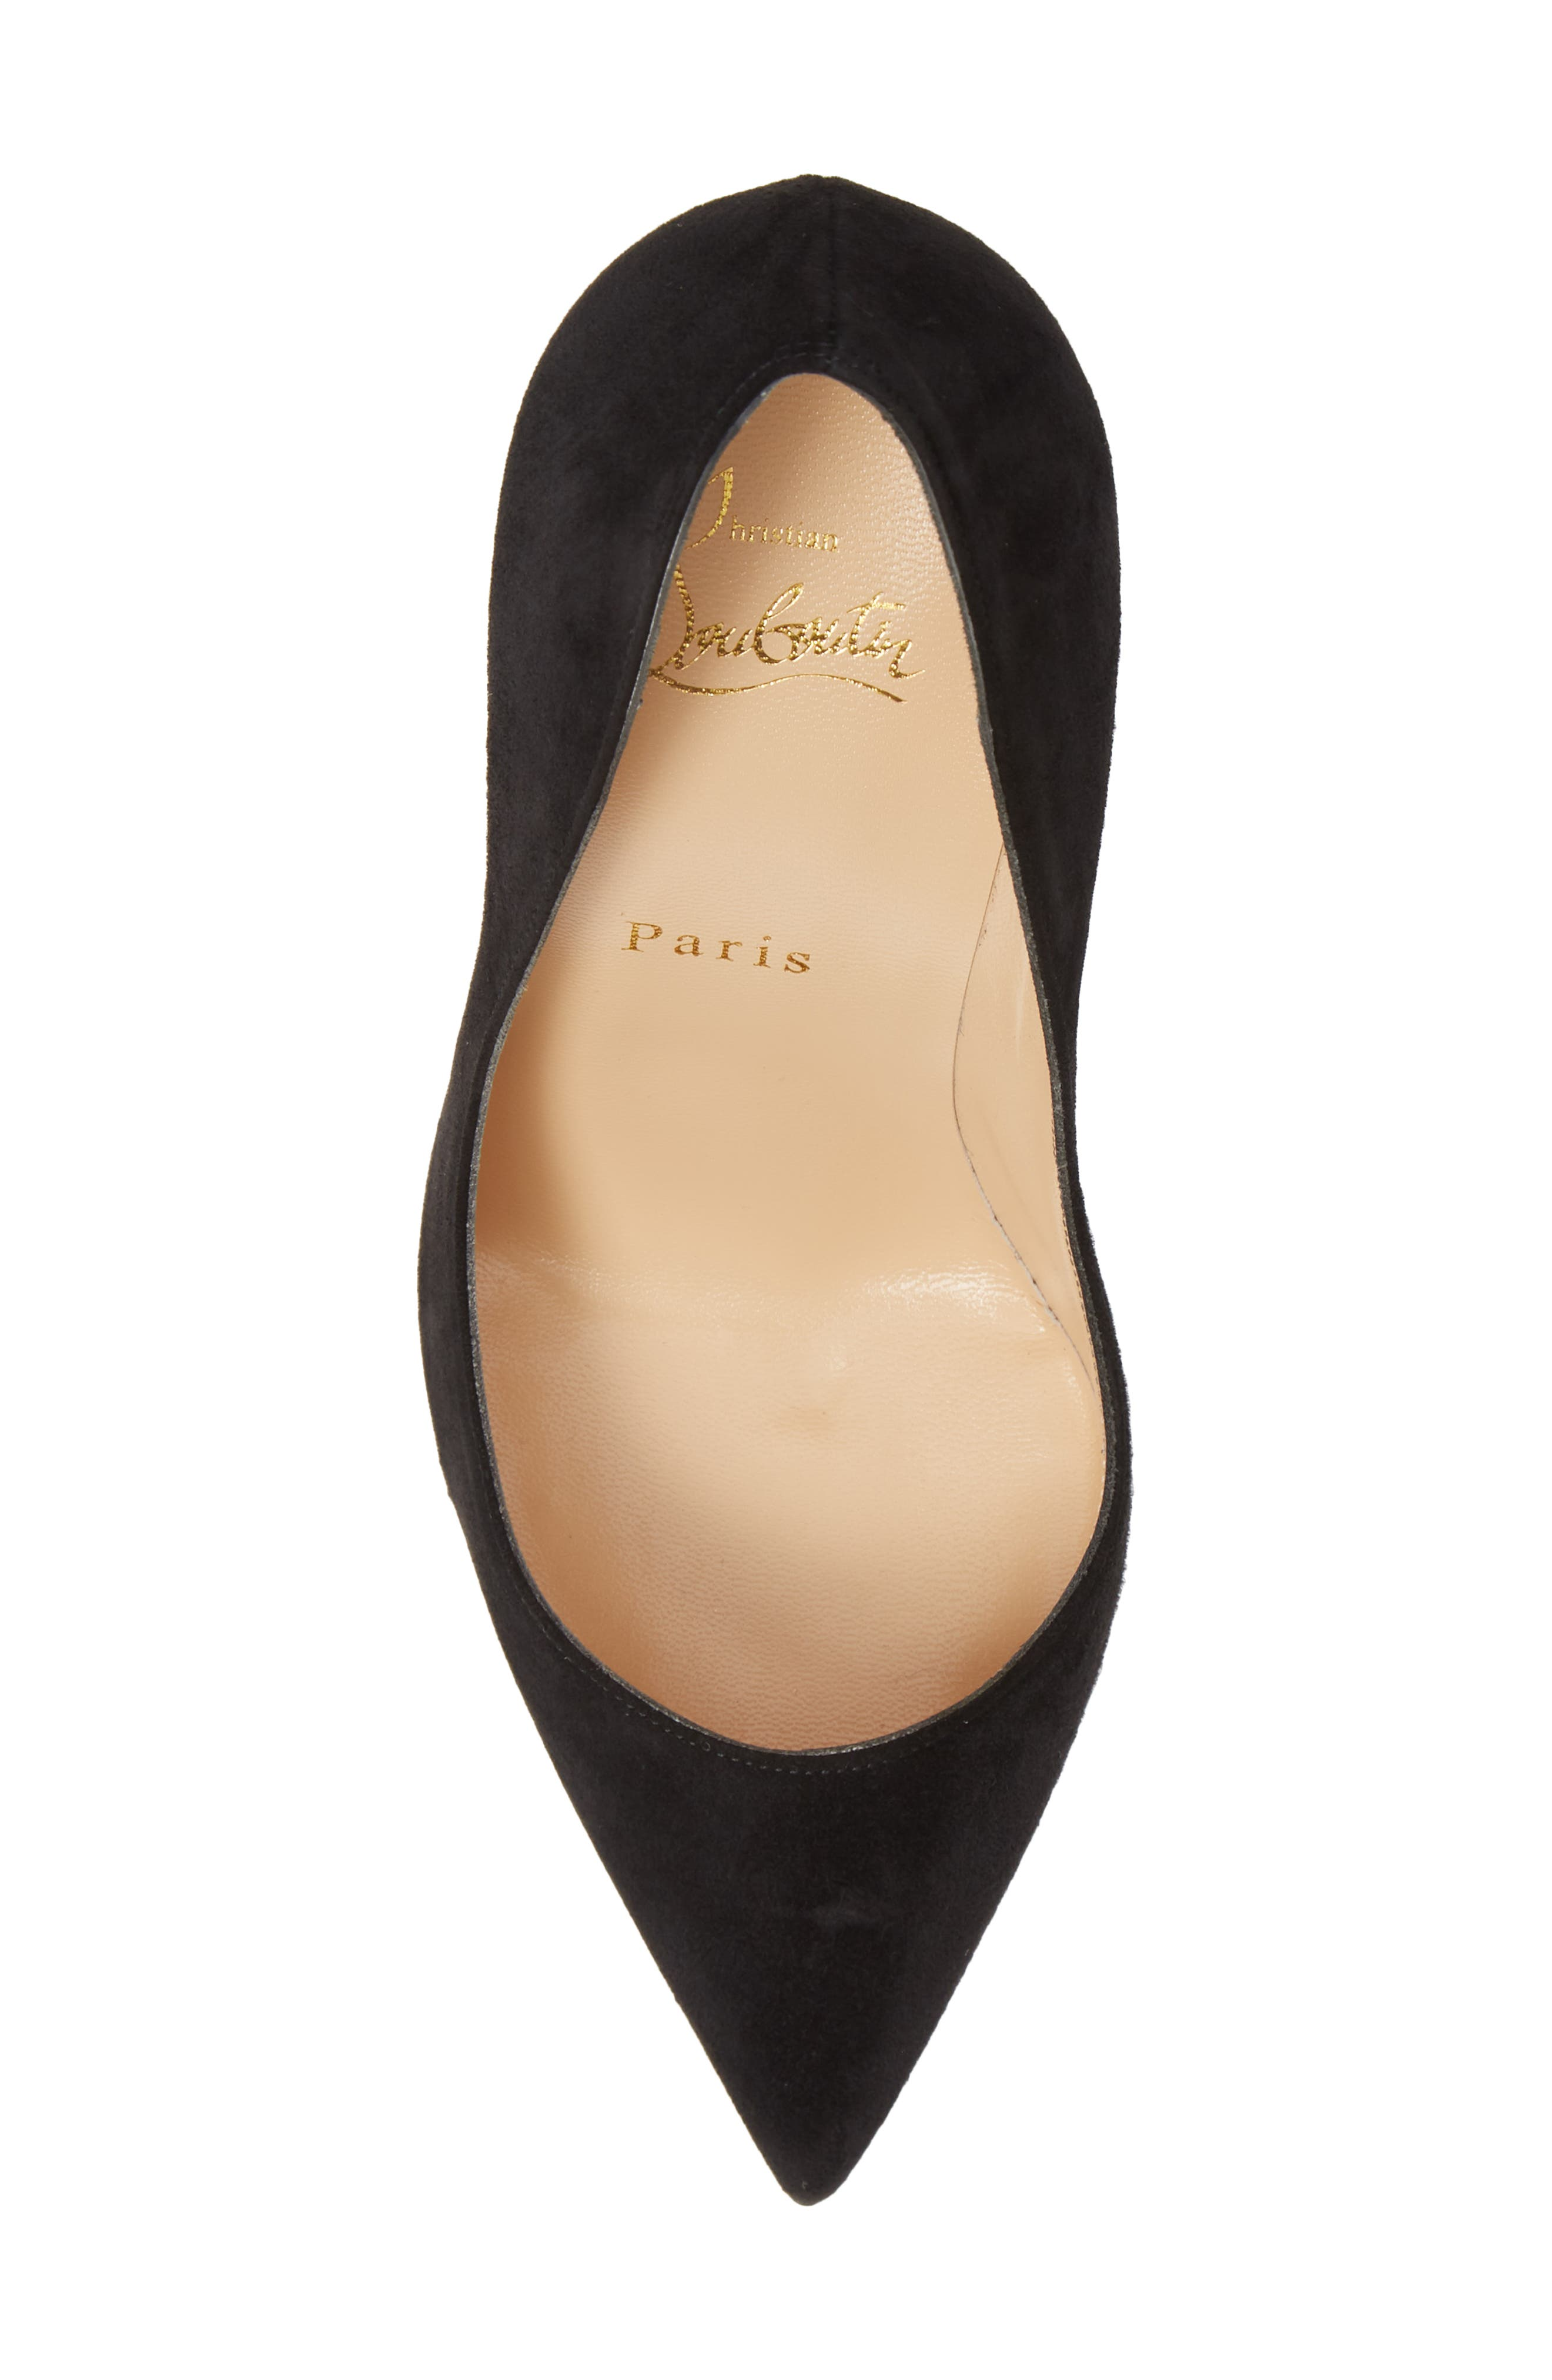 Pigalle Follies Pointy Toe Pump,                             Alternate thumbnail 5, color,                             BLACK SUEDE